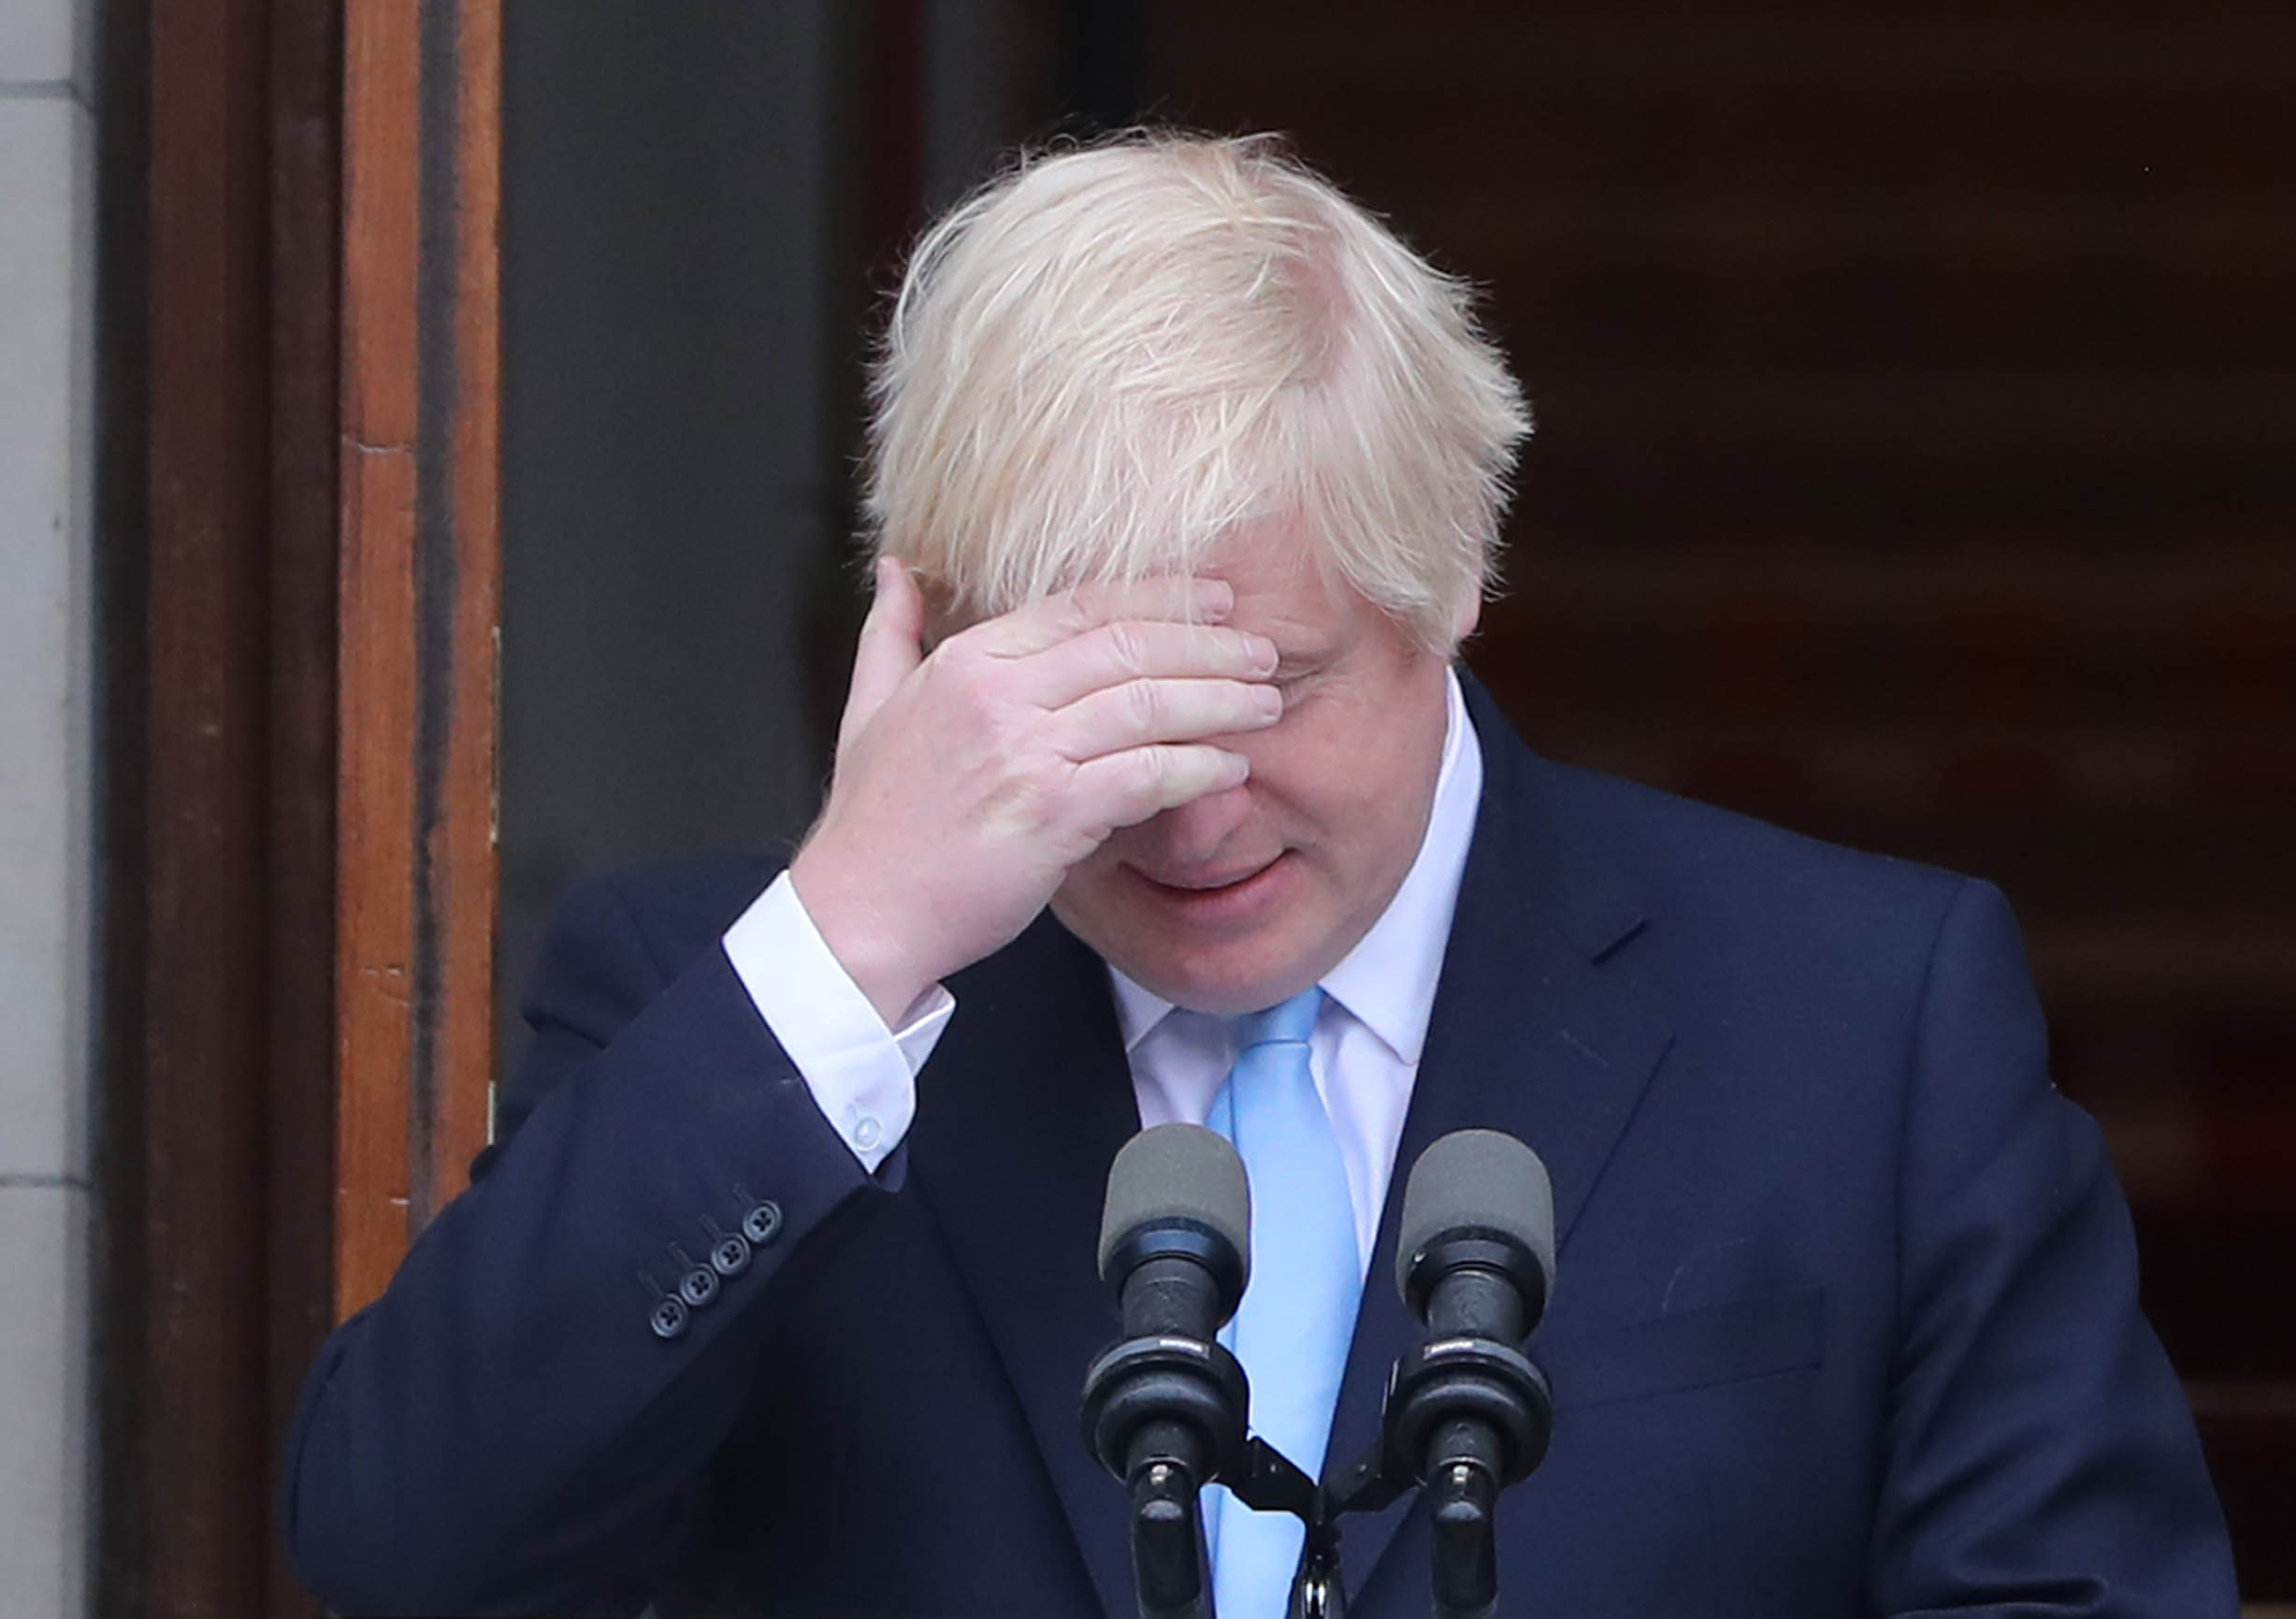 British PM Boris Johnson to suspend Parliament as his Brexit plans stall